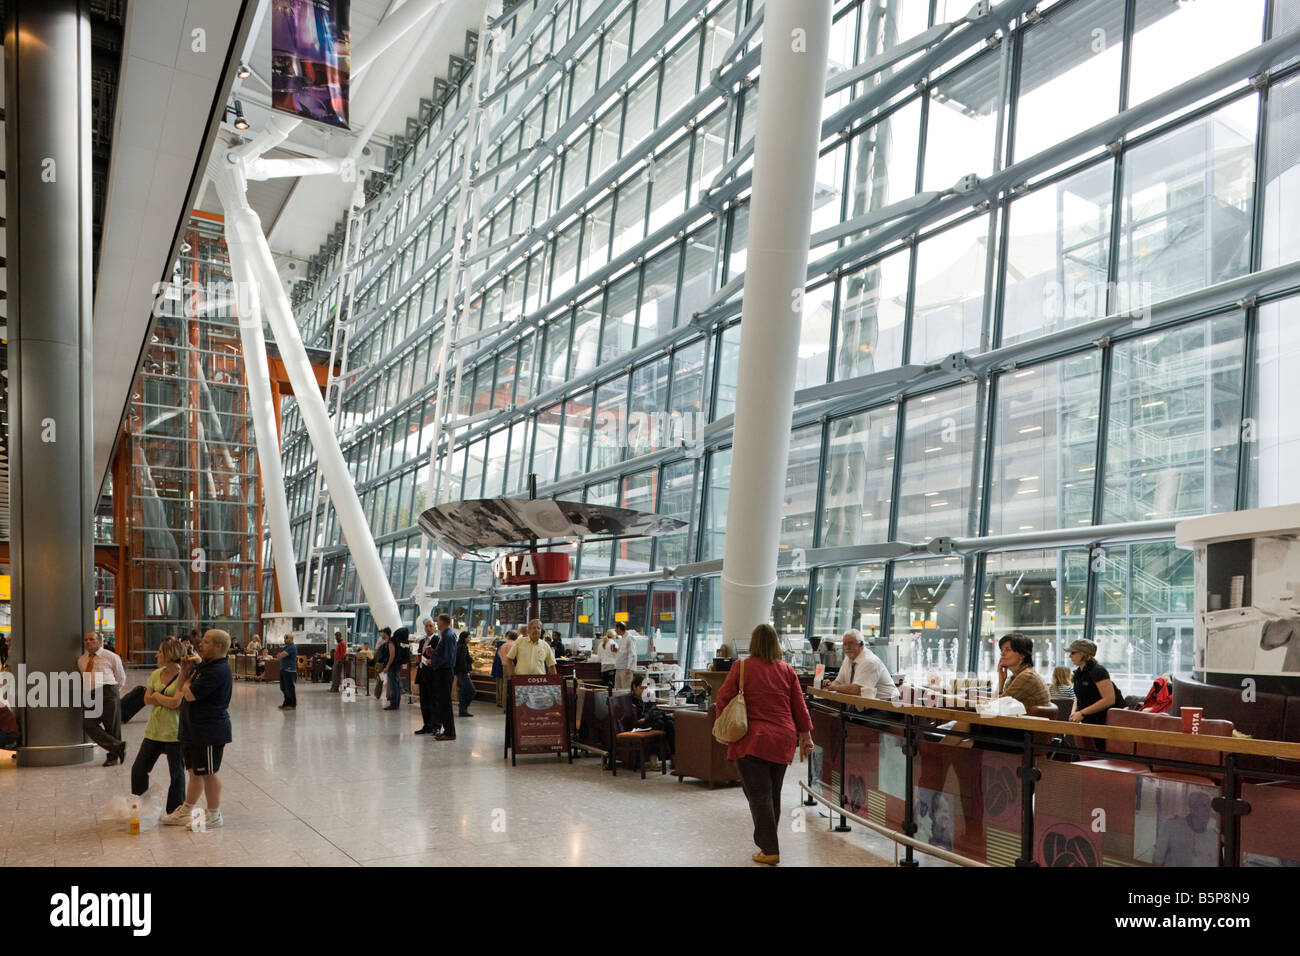 Costa Coffee cafe, Terminal 5, Heathrow, London, England - Stock Image